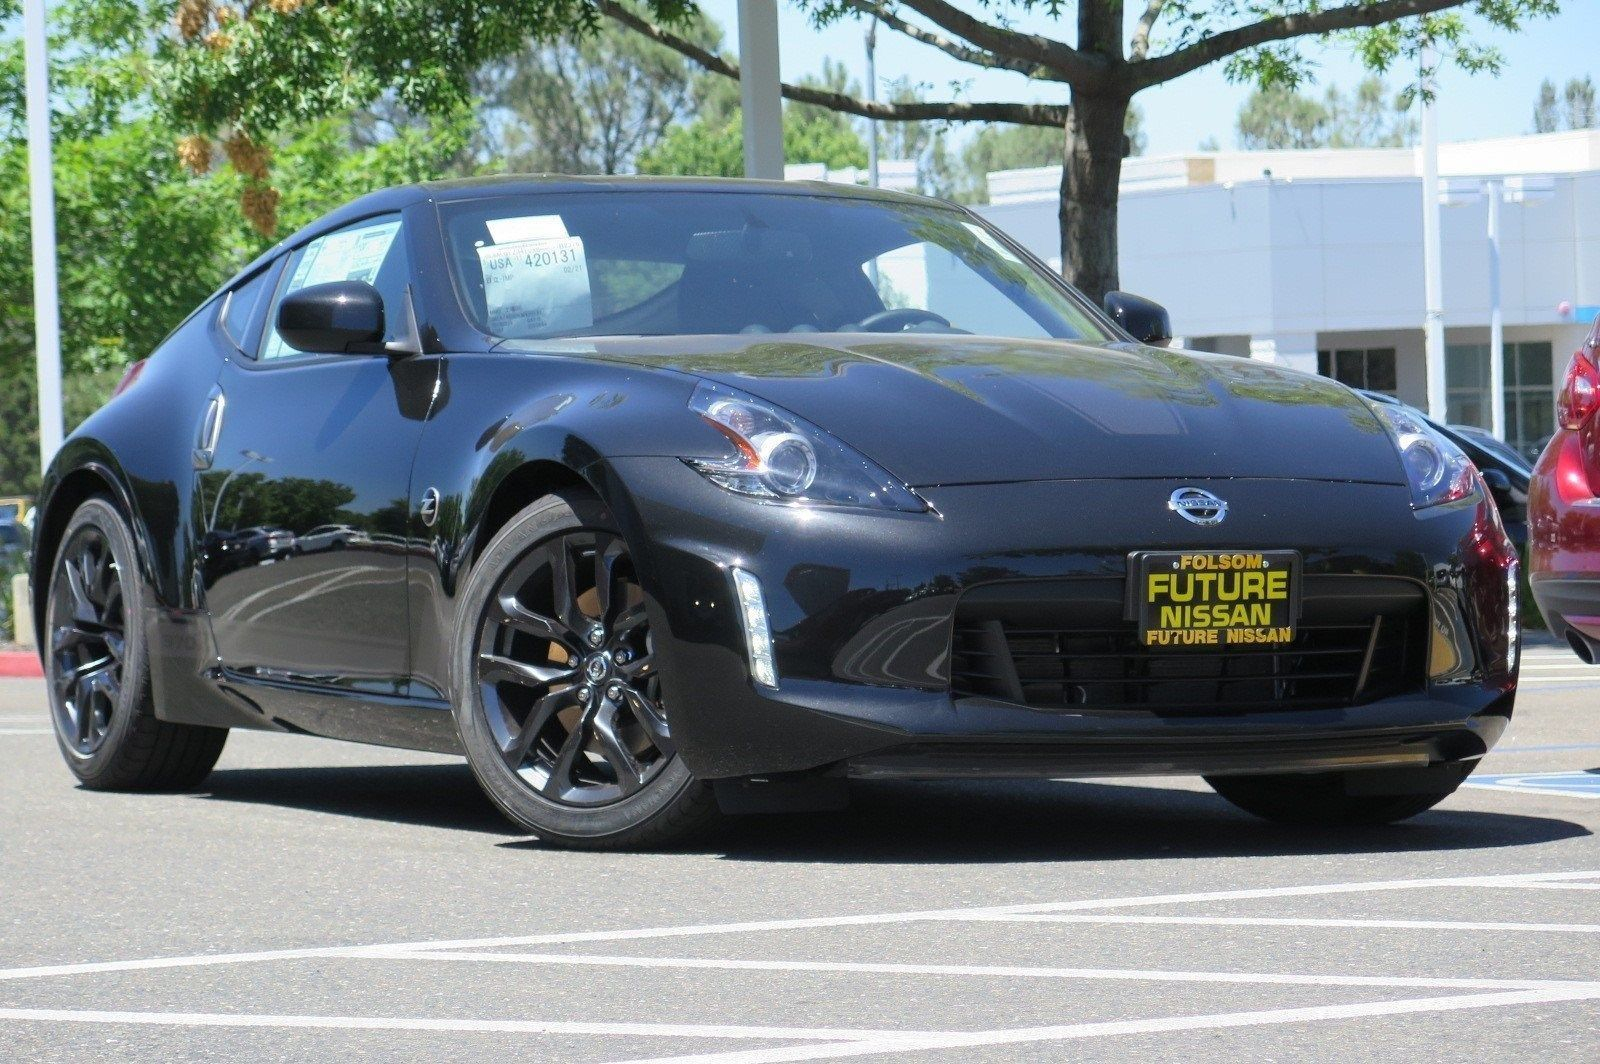 83 The 2019 Nissan Z Turbo Nismo Pricing